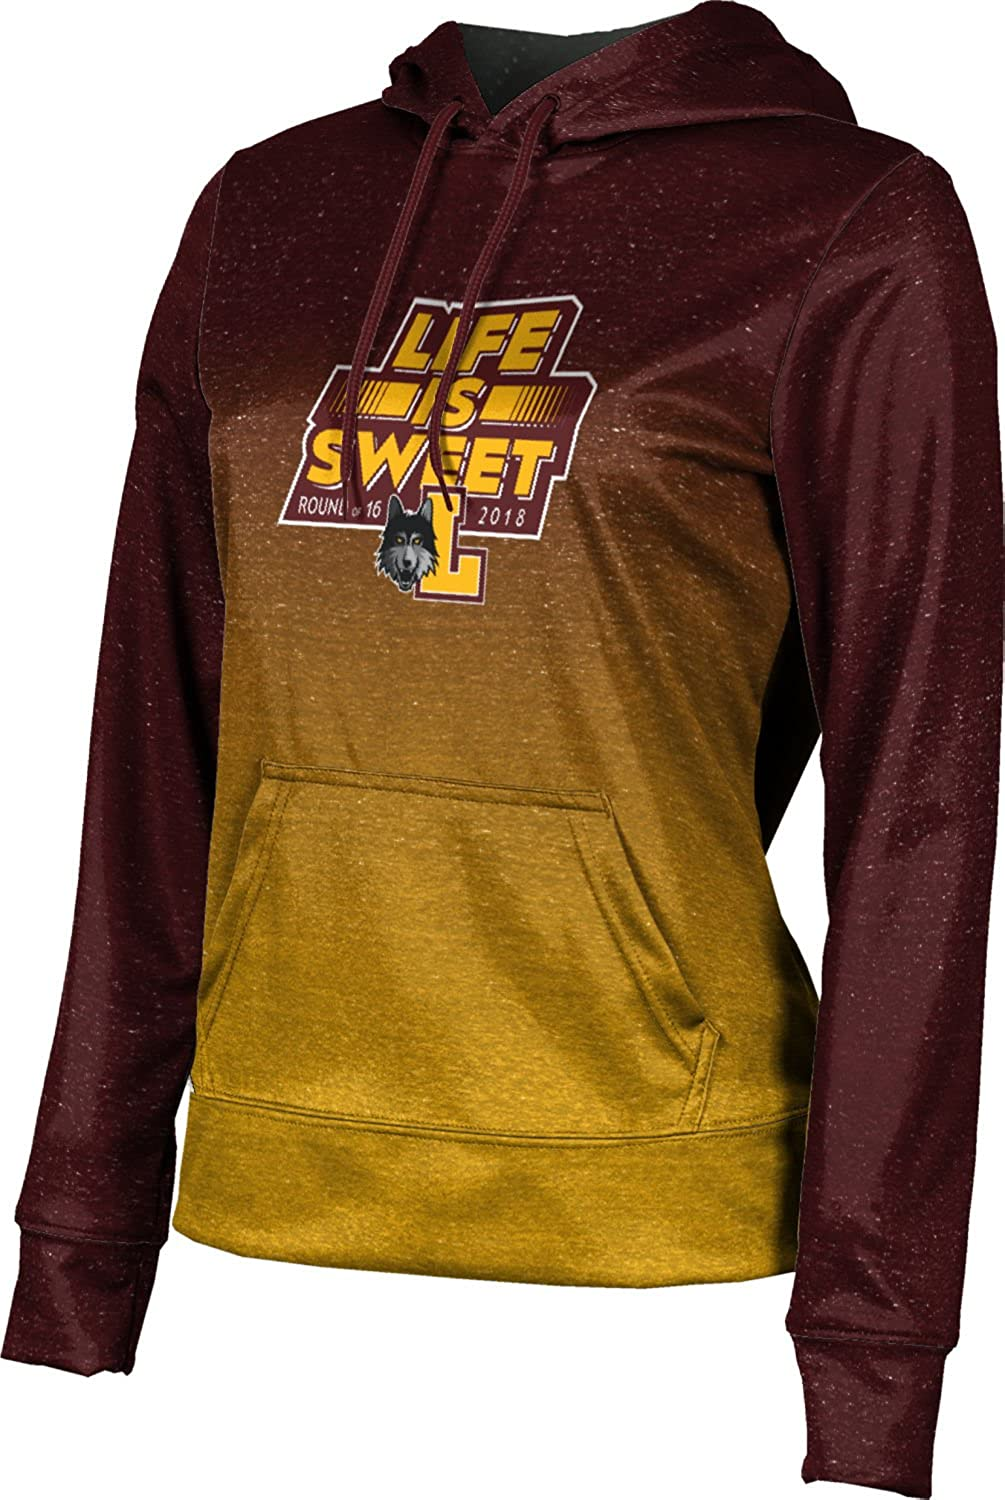 ProSphere Men/'s Loyola University Chicago Gameday Hoodie Sweatshirt Apparel